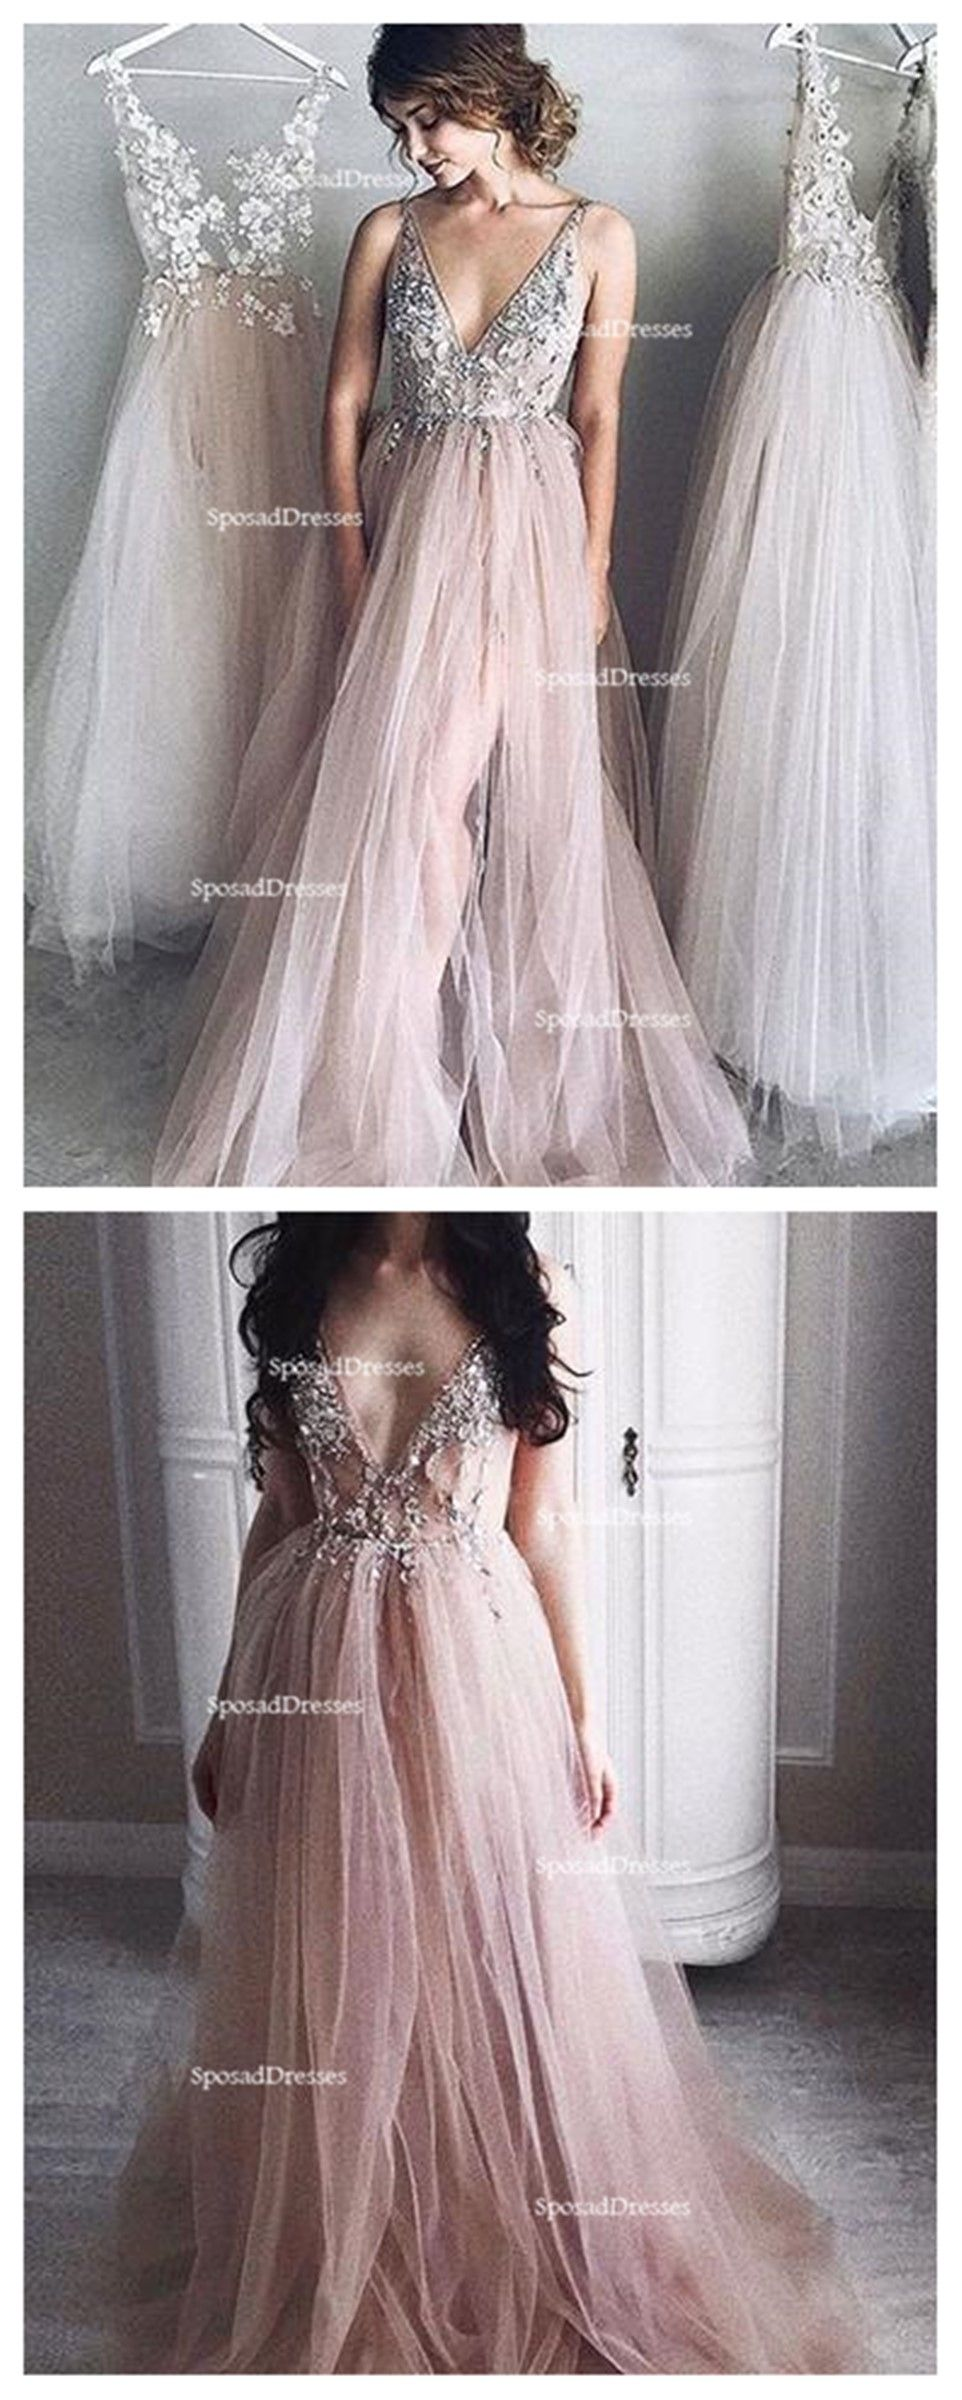 Pale blush pink sexy deep v neckline lace beaded long evening prom